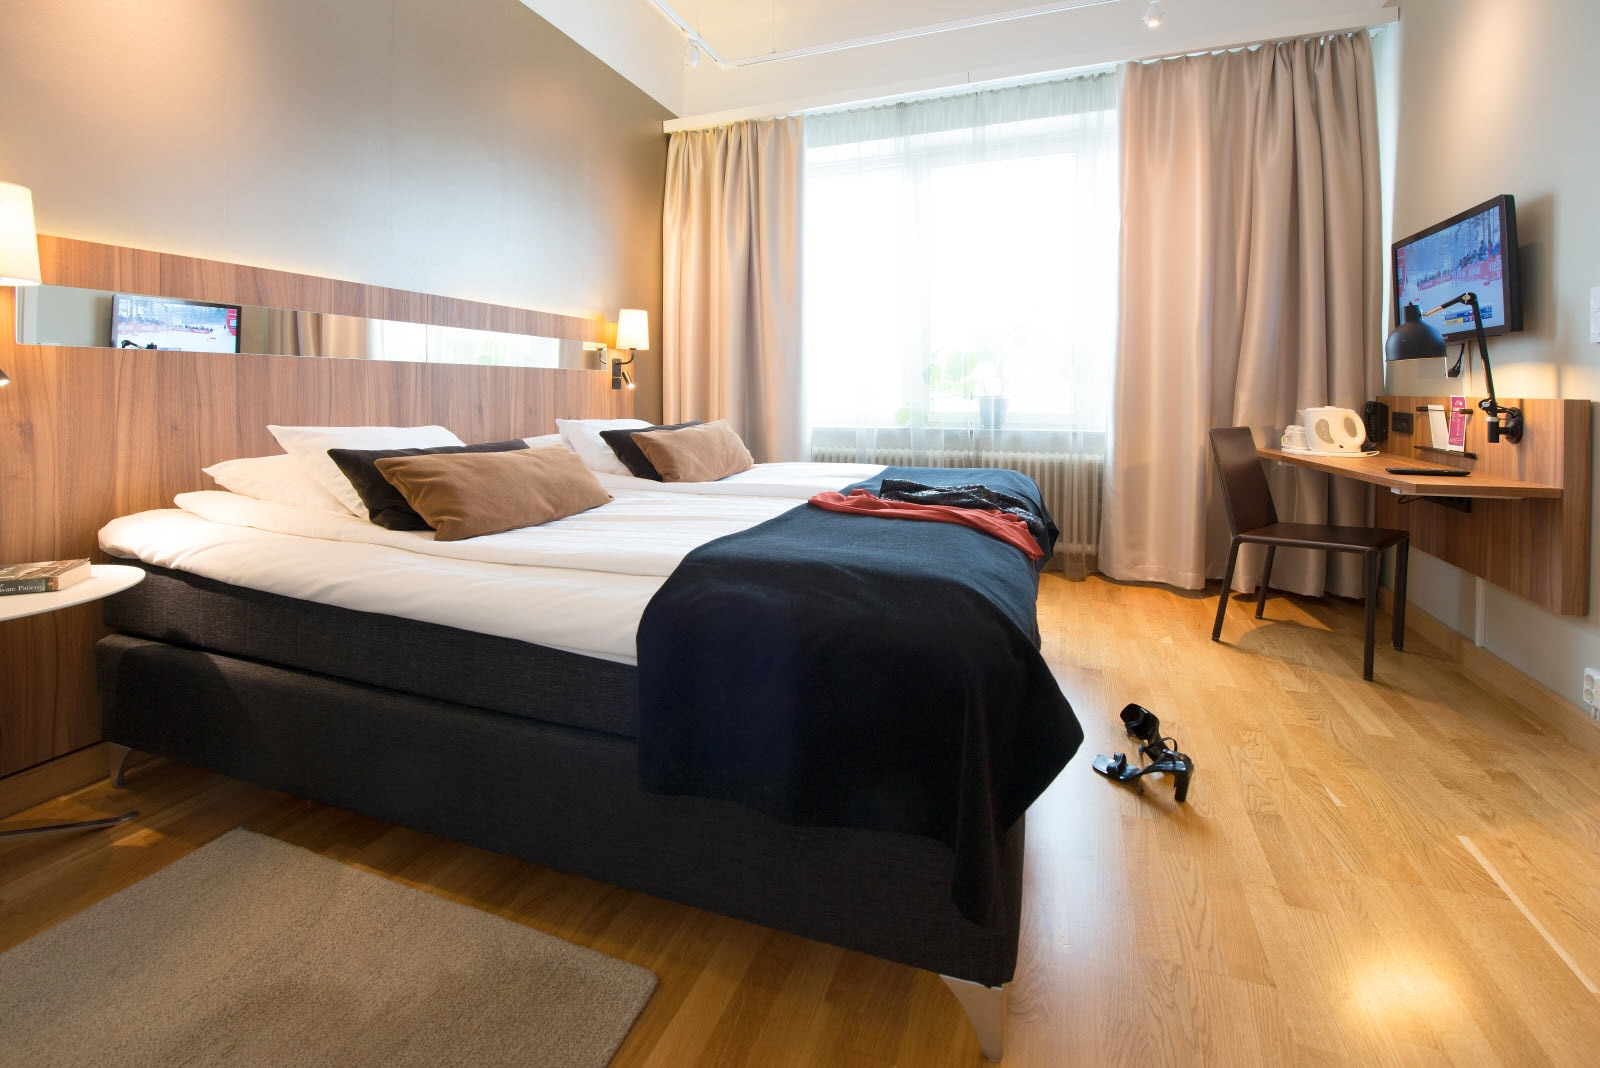 Scandic-Billingen-Room-Suite.jpg